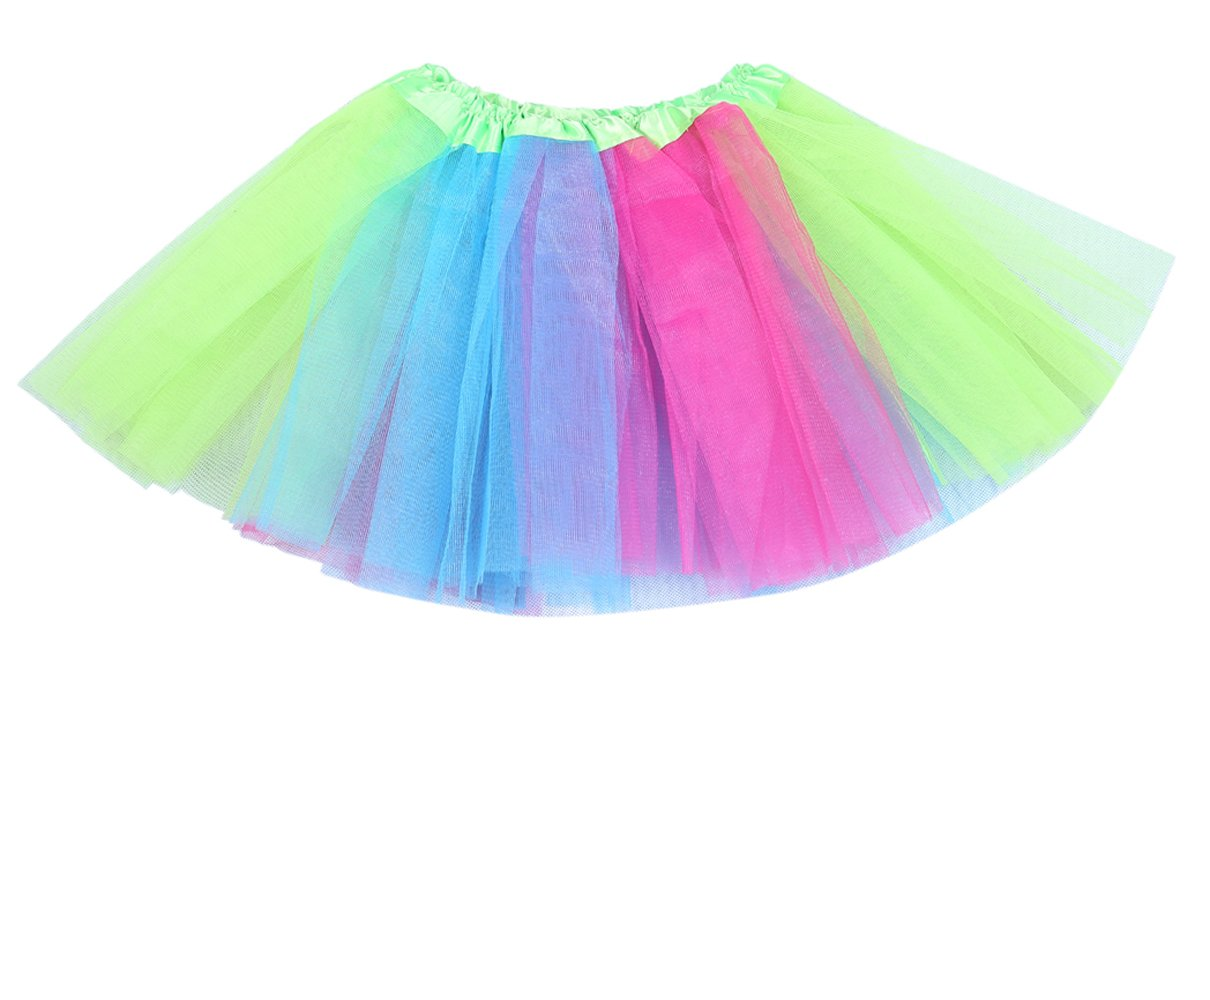 "Anleolife 12"" Rainbow Colorful Tutu Skirt Baby Girls Fluffy Tutu Skirt"